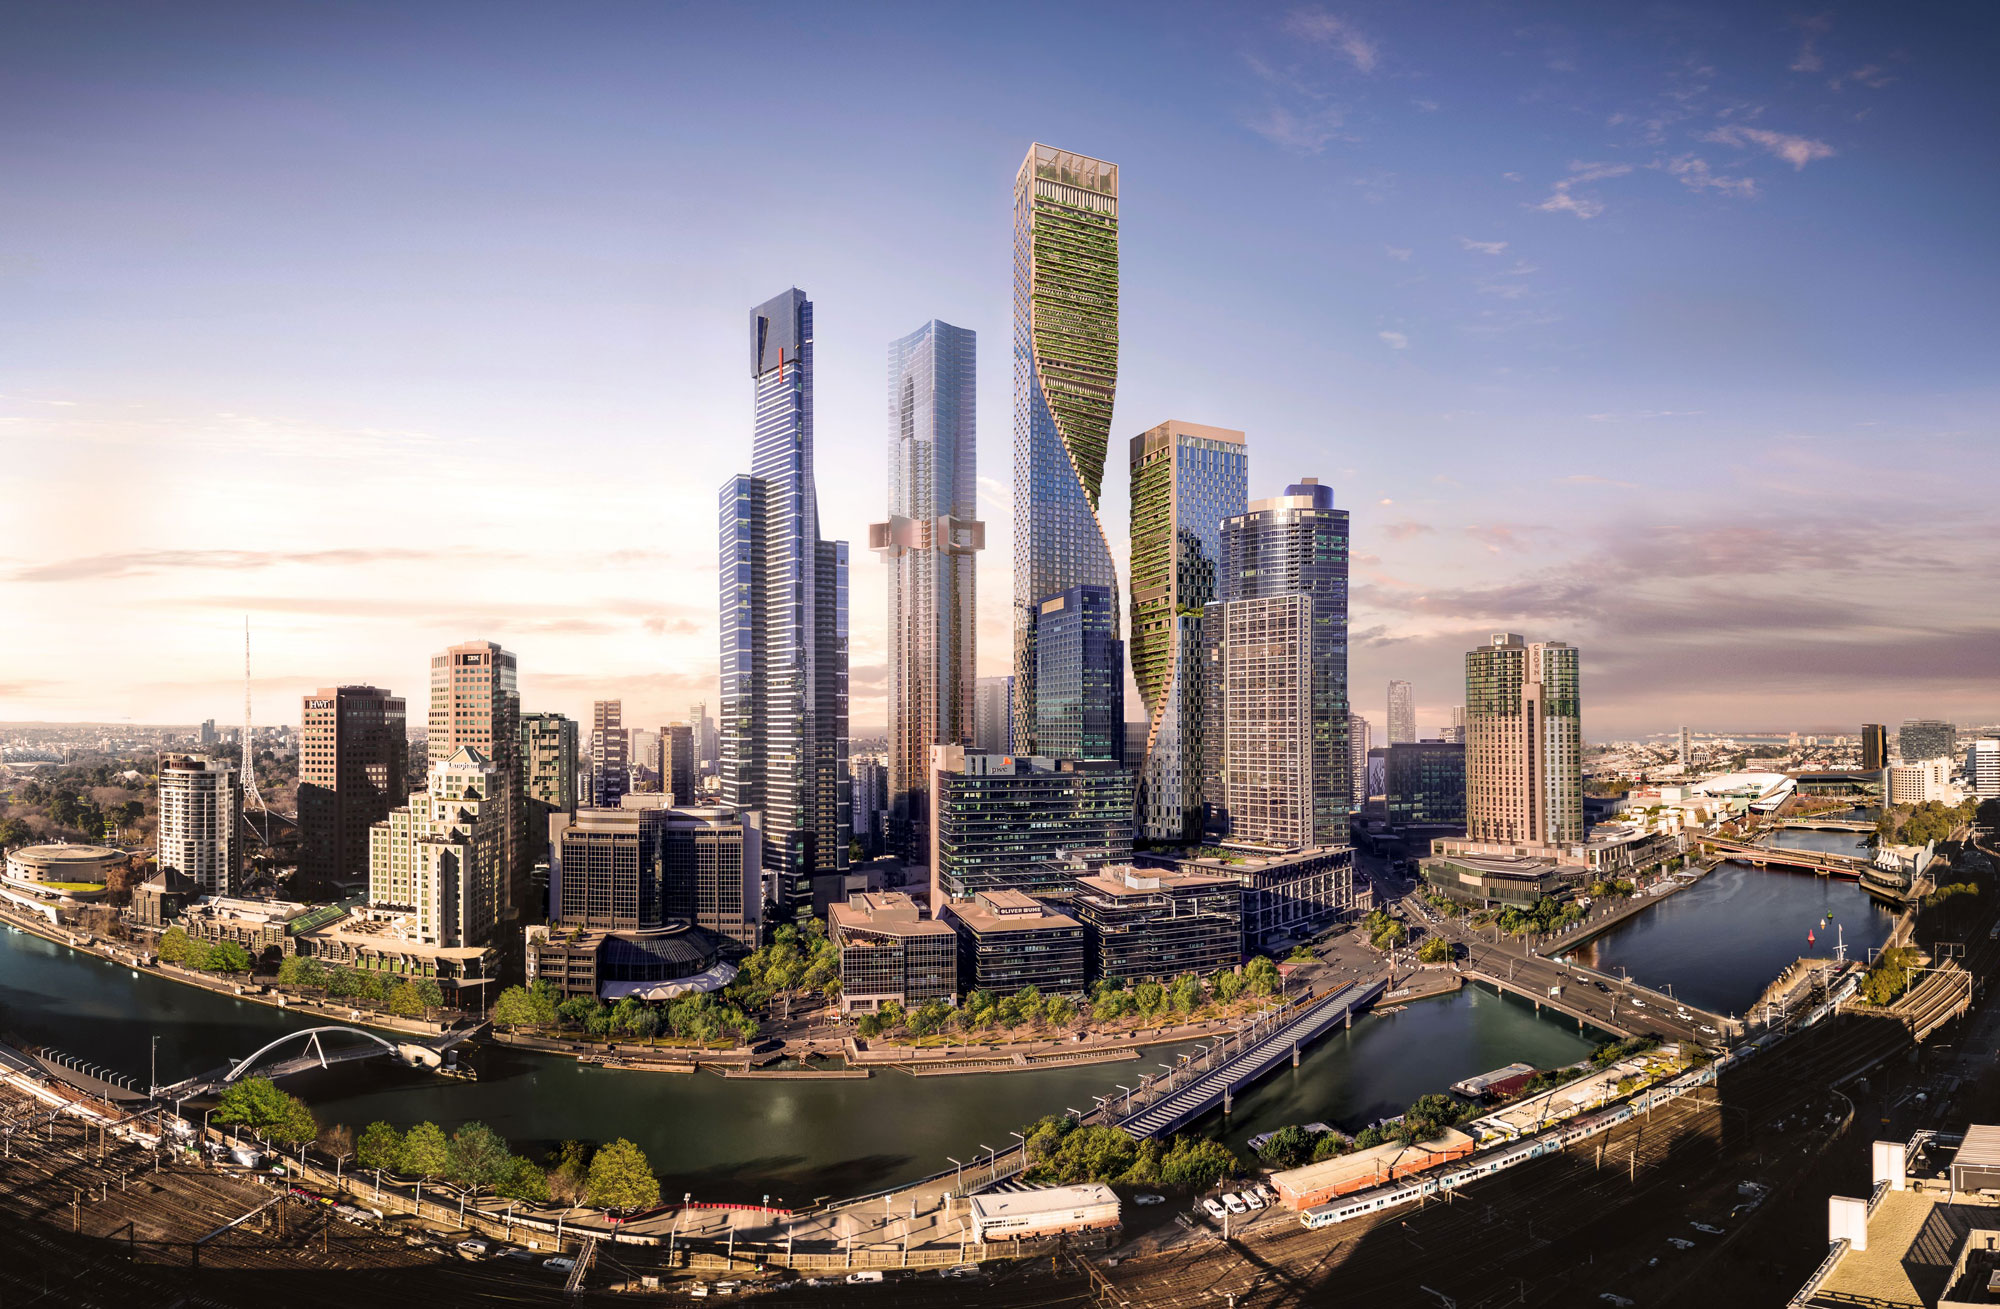 rendering of an in-development skyscraper in Melbourne, Southbank by Beulah development